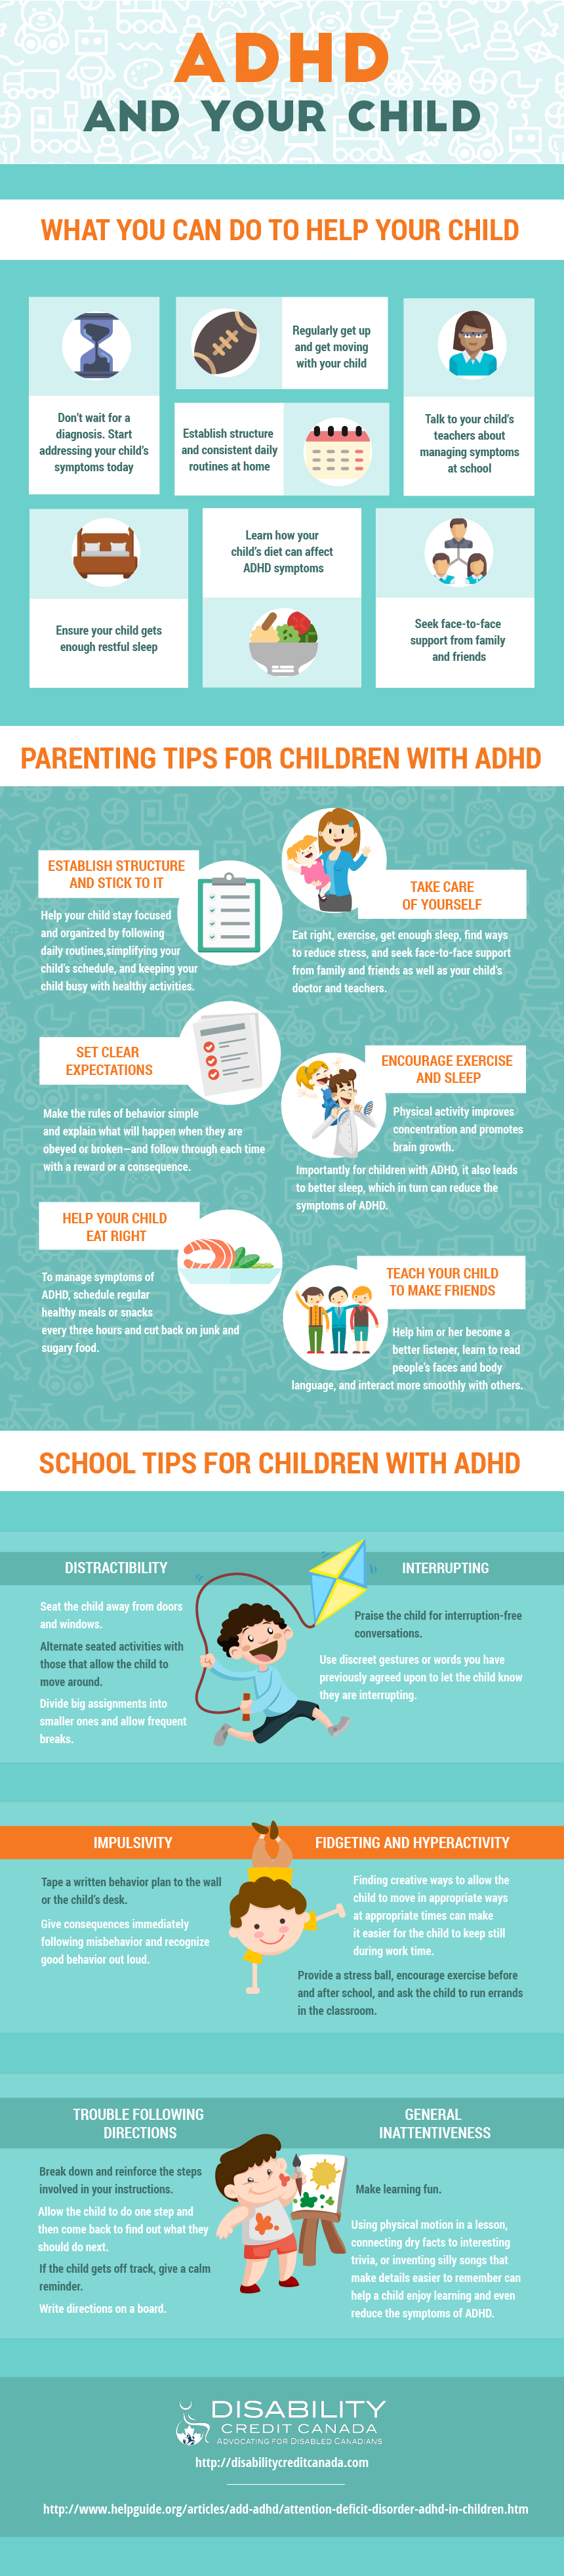 ADHD in Children and tips and tricks for parents and teachers